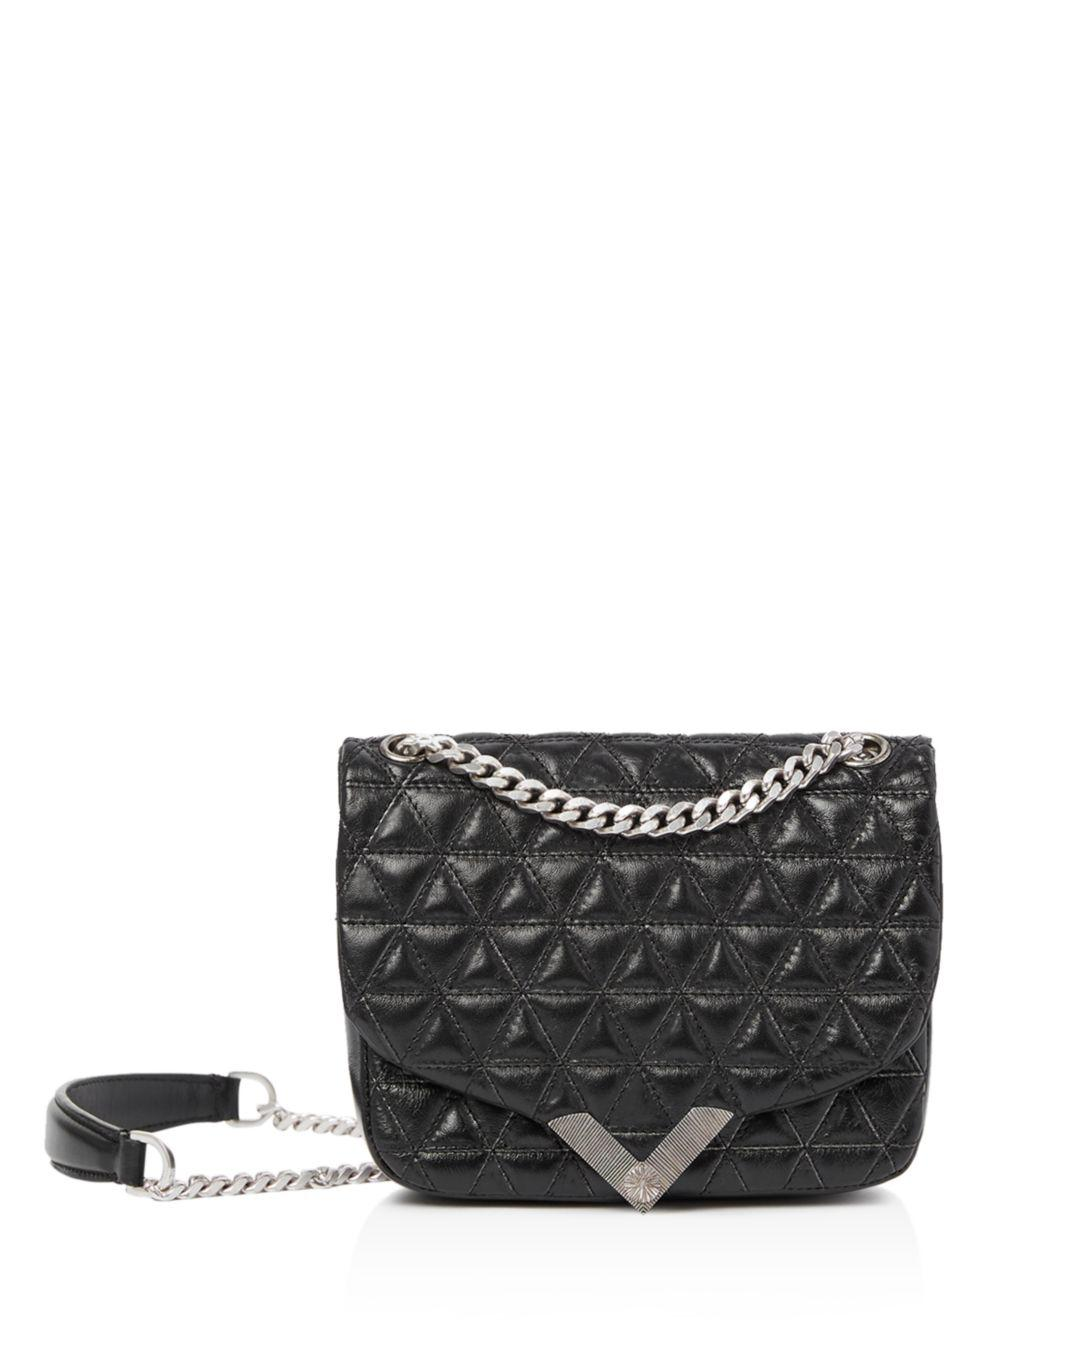 340db4d3a3 Lyst - The Kooples Stella Mini Quilted Leather Shoulder Bag in Black